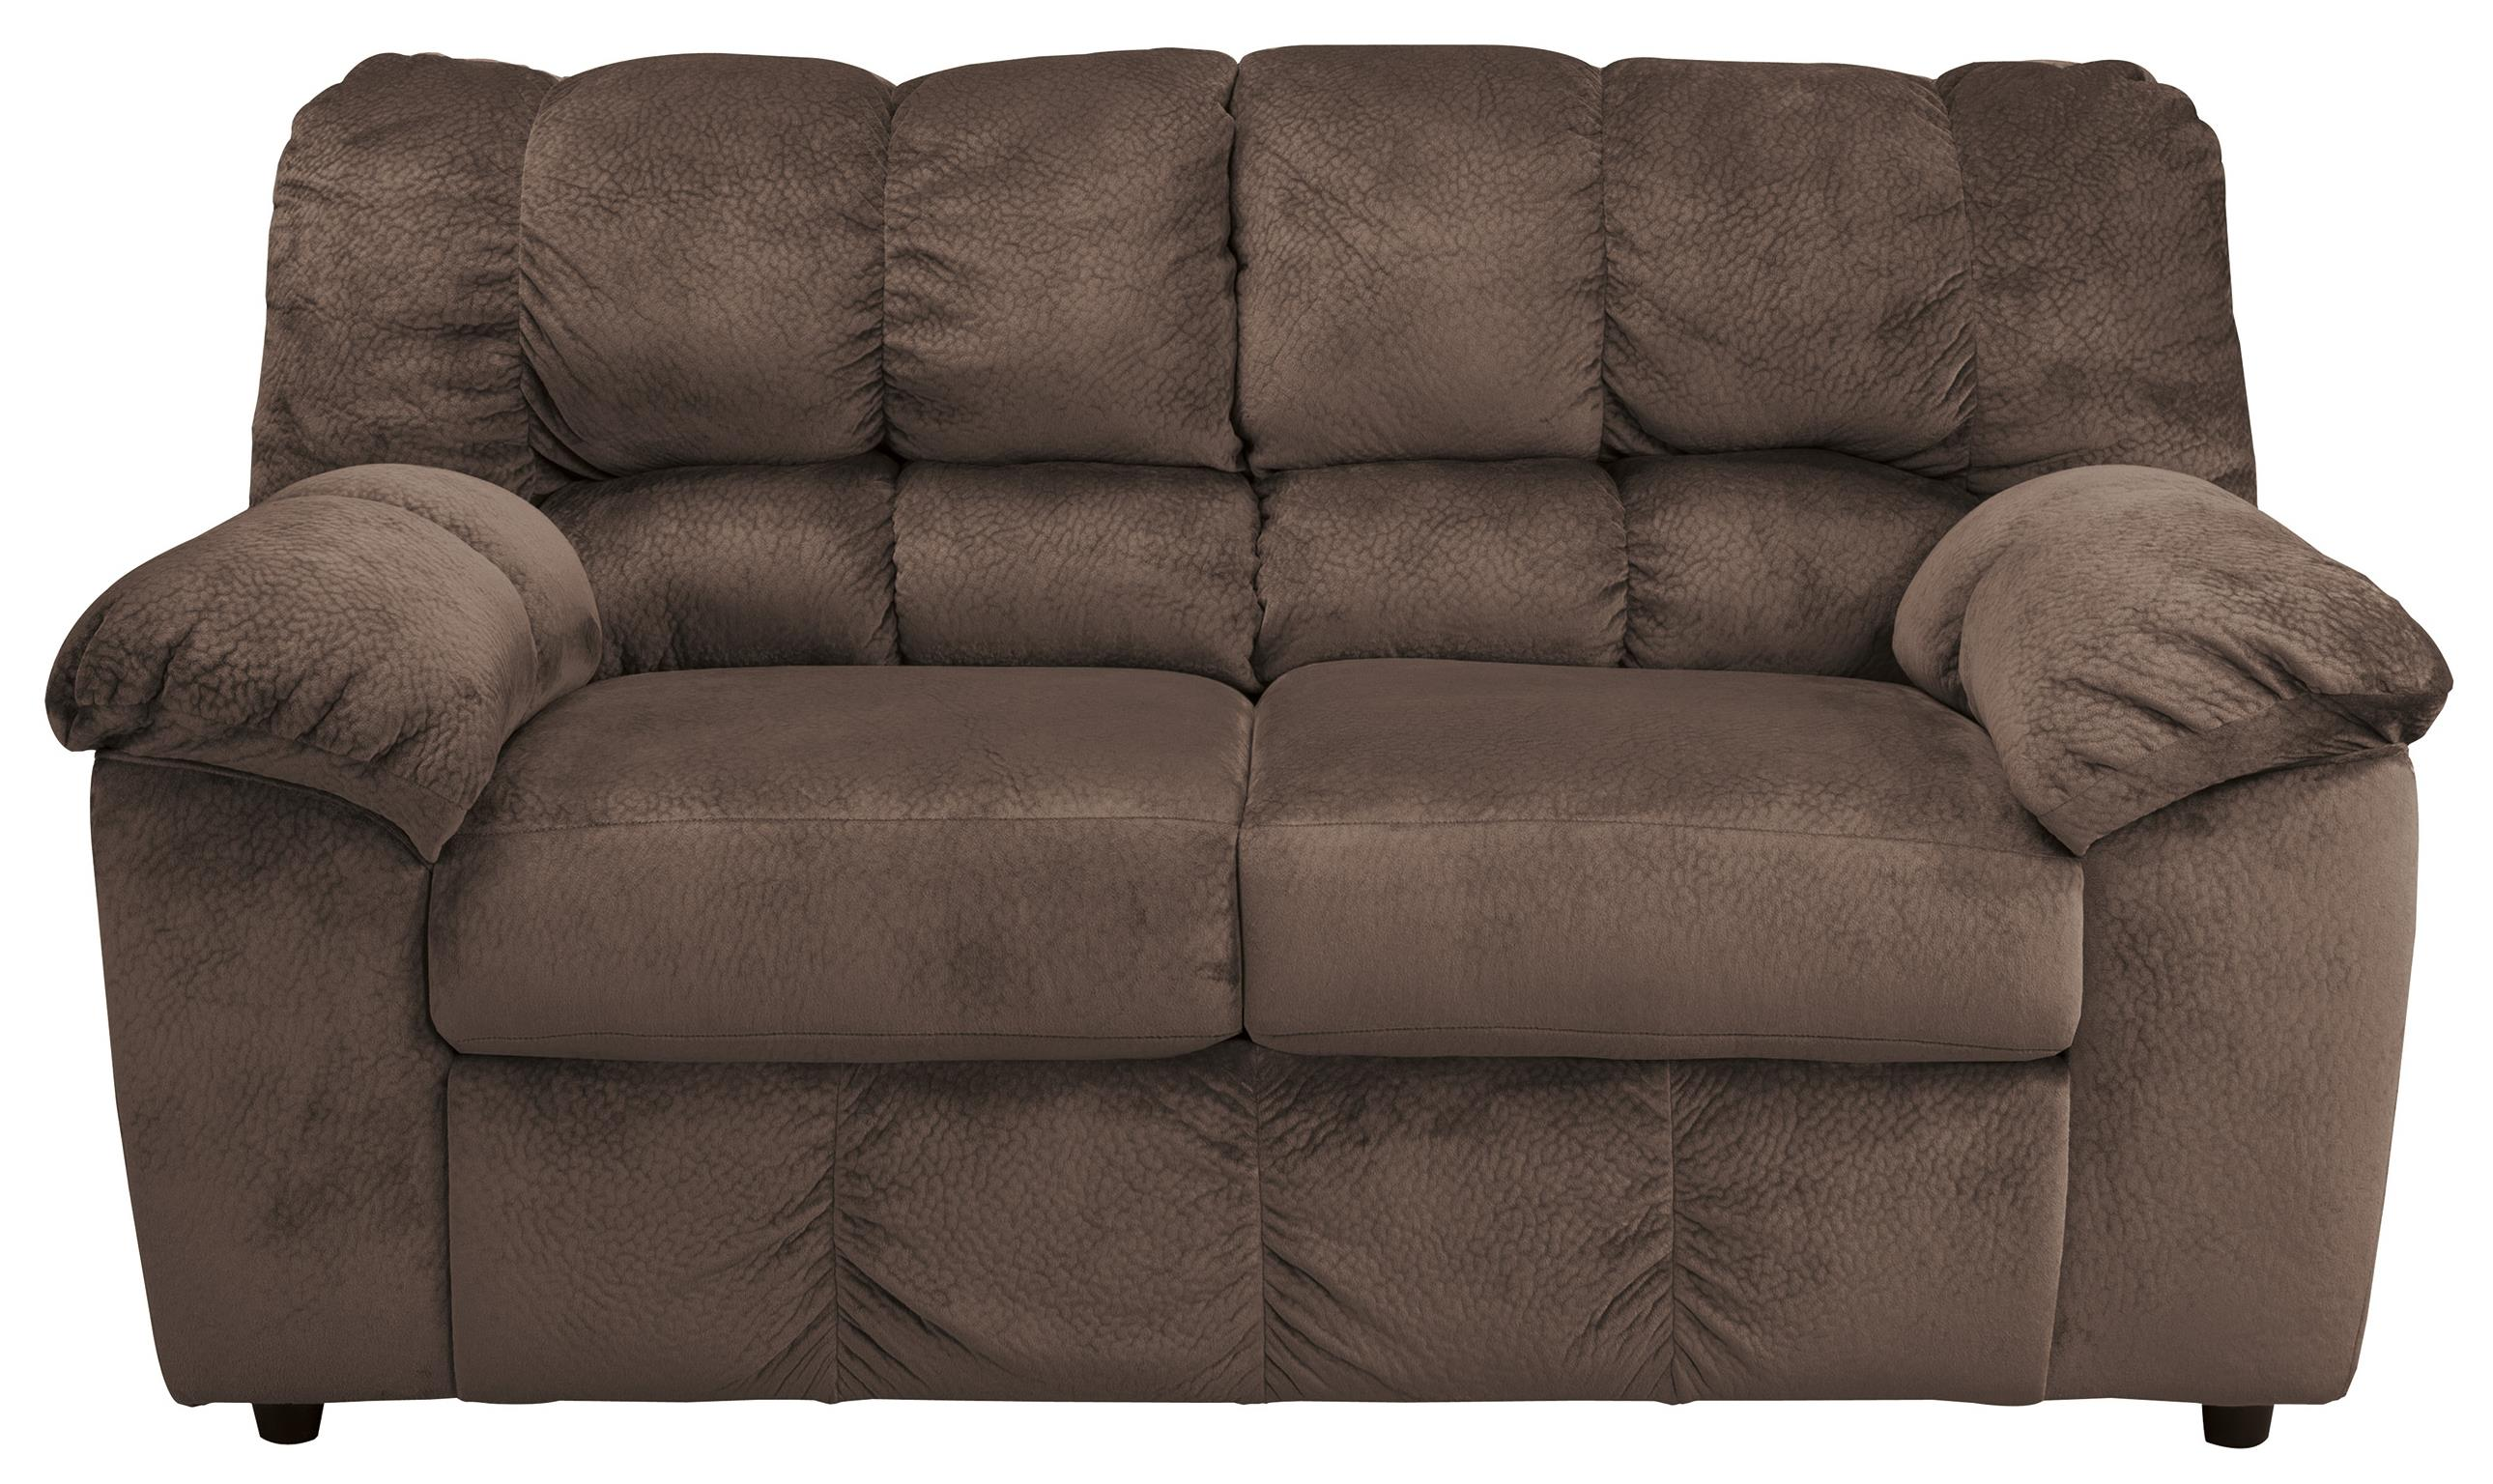 Signature Design by Ashley Julson - Cafe Loveseat - Item Number: 2660435